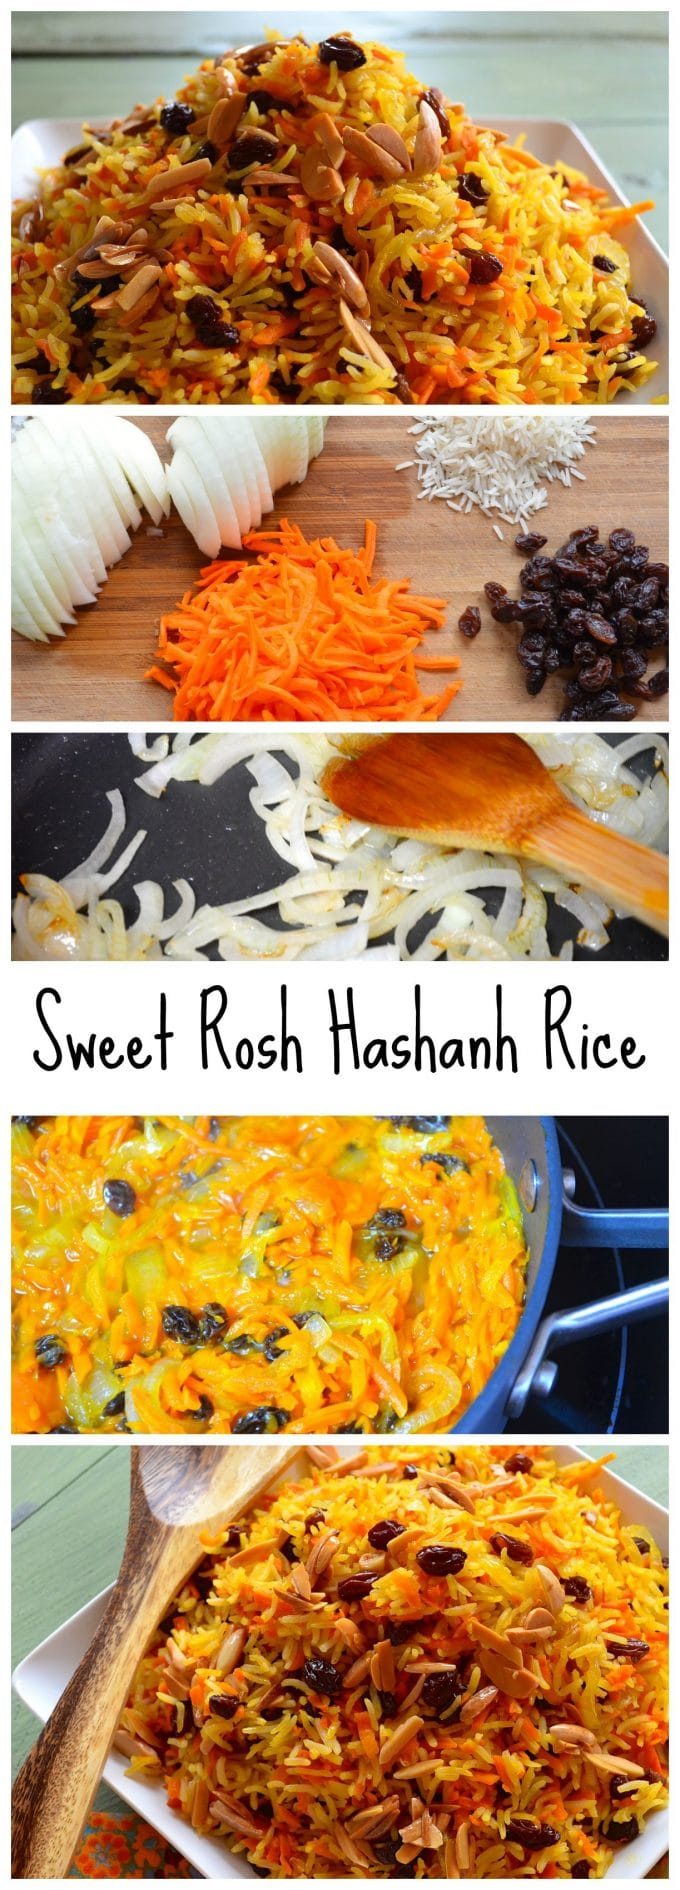 Rosh Hashanah Sweet Basmati Rice with Carrots & Raisins - This Sweet and fragrant basmati rice with carrots and raisins is the perfect vegetarian side dish for any holiday meal. In our house this is a Rosh Hashanah Favorite.Vegan and Gluten Free.